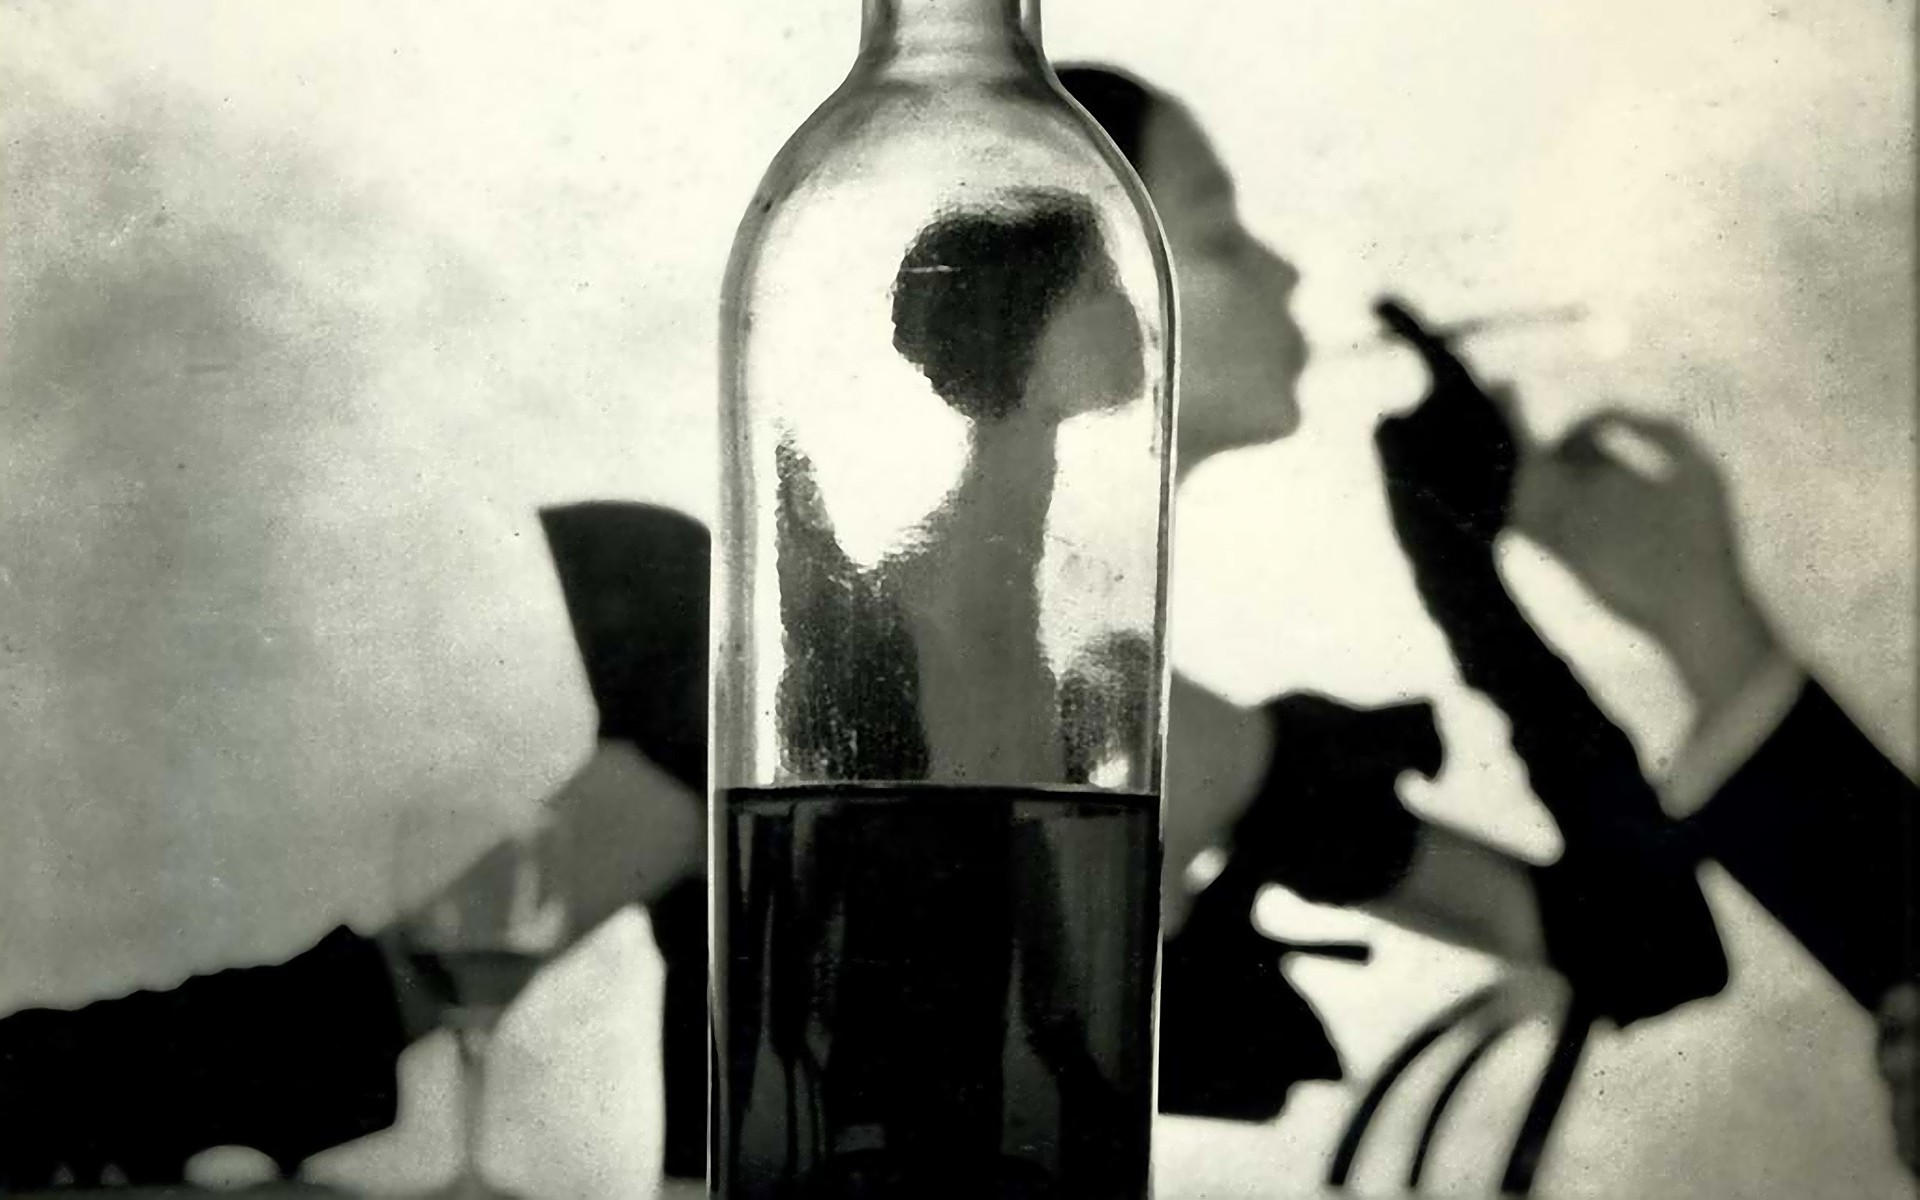 women-smoking-bottles-wine-monochrome-HD-Wallpapers